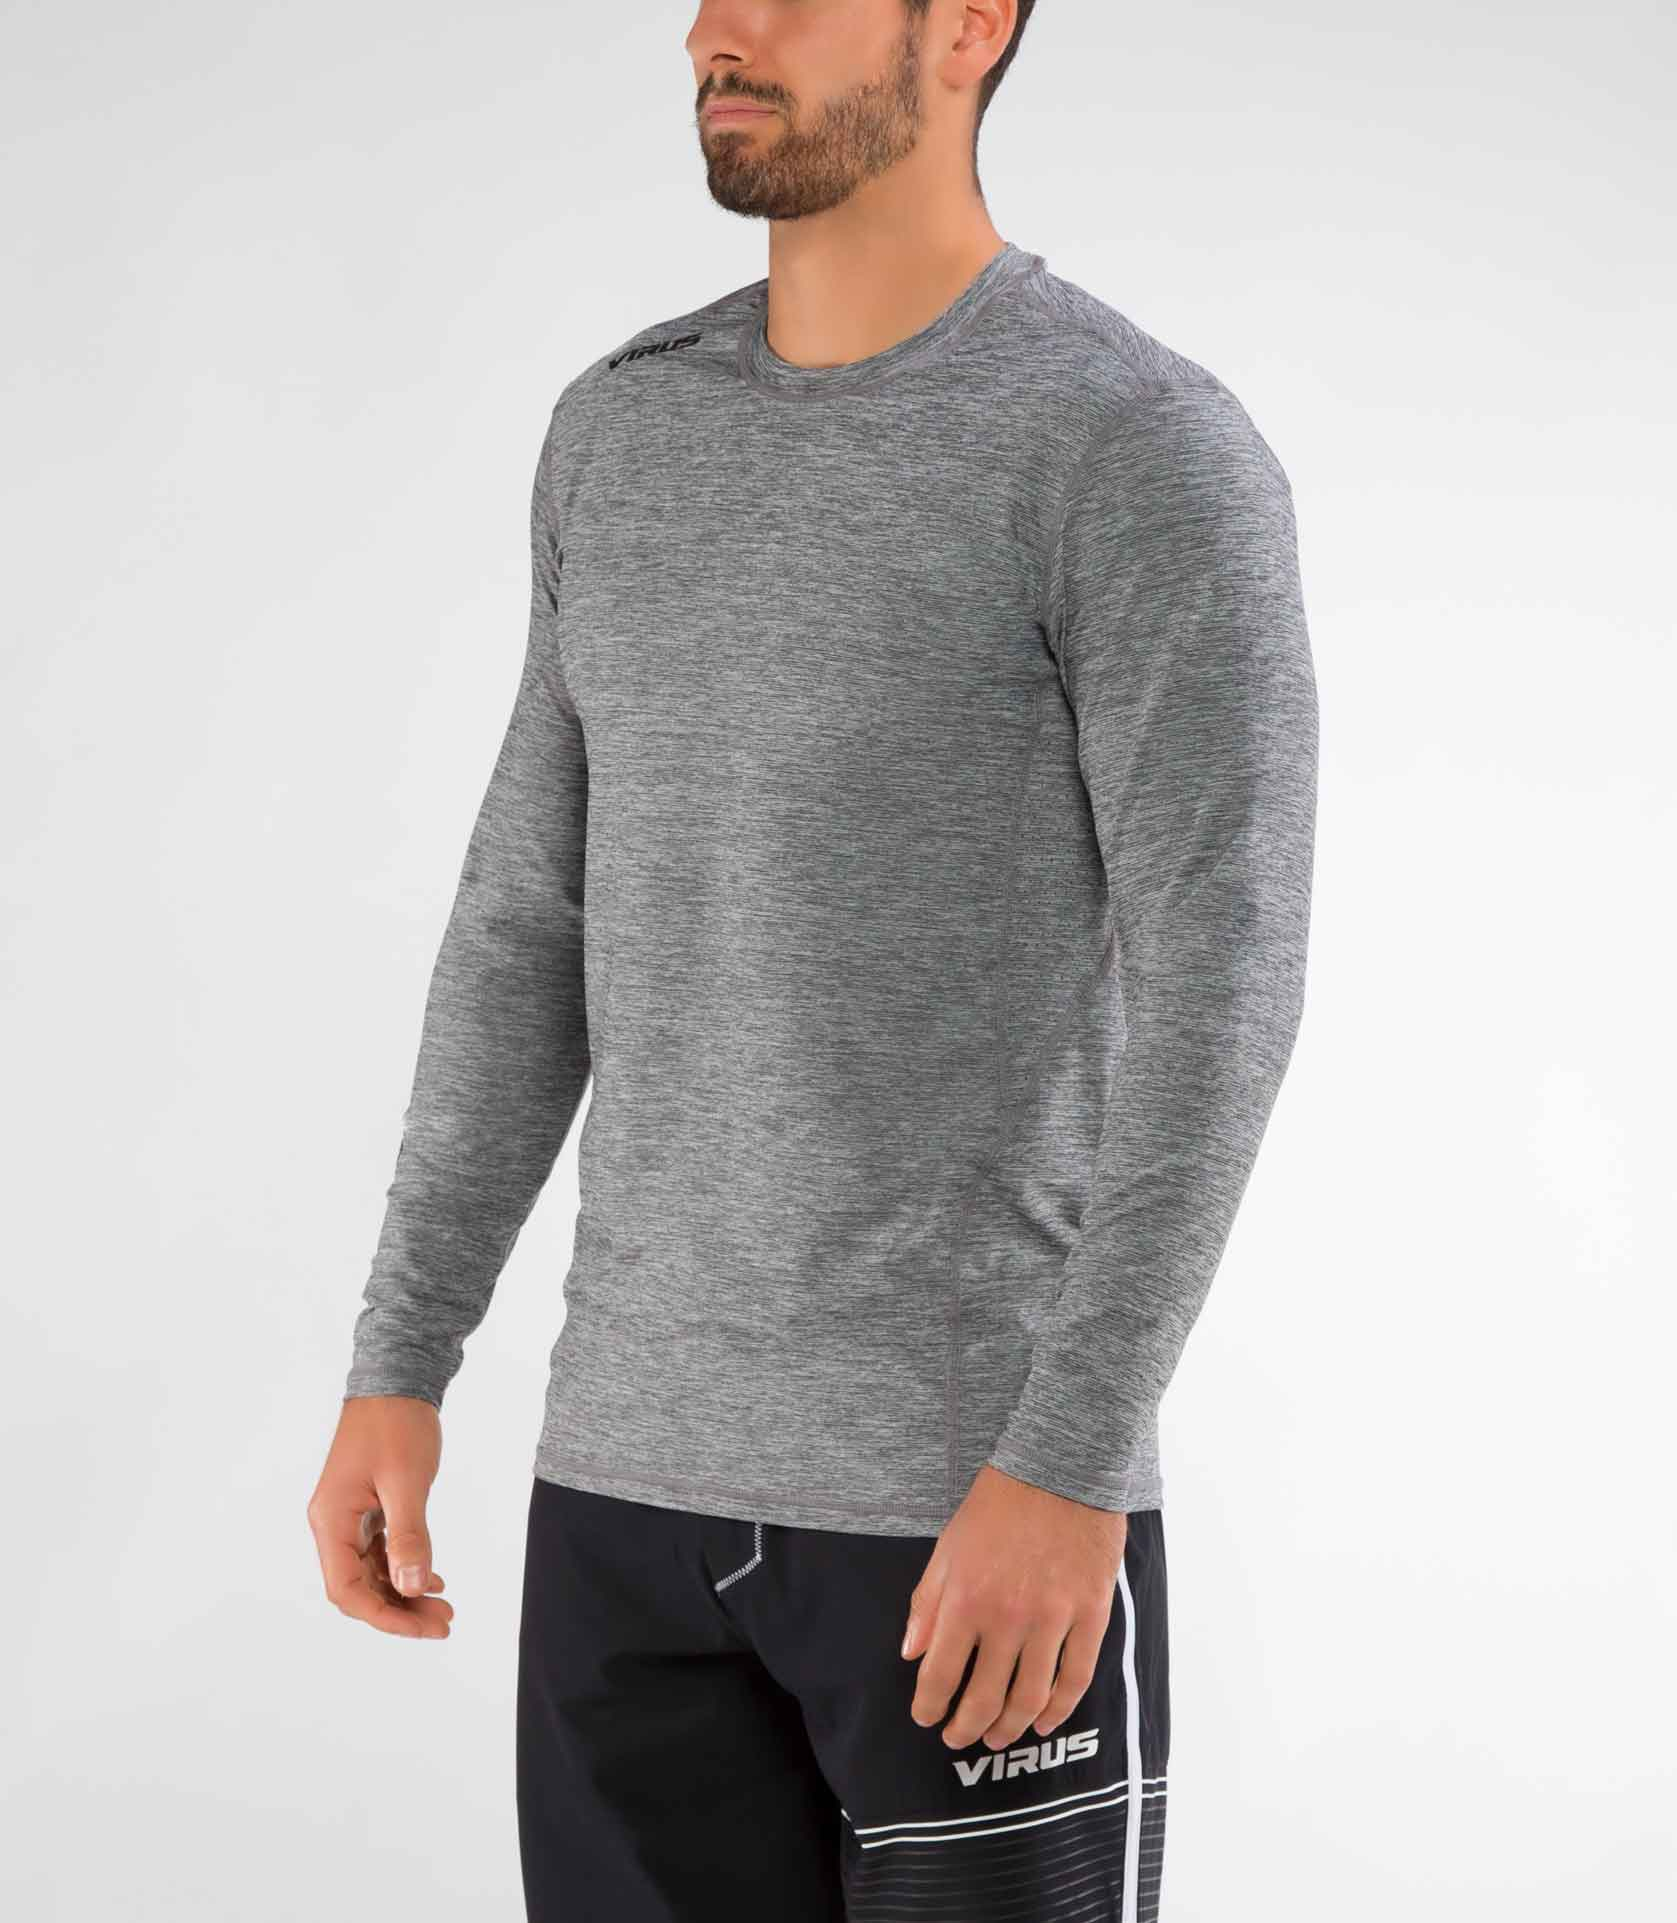 Co33   Stay Cool Hydro Long Sleeve Functional Fit Top